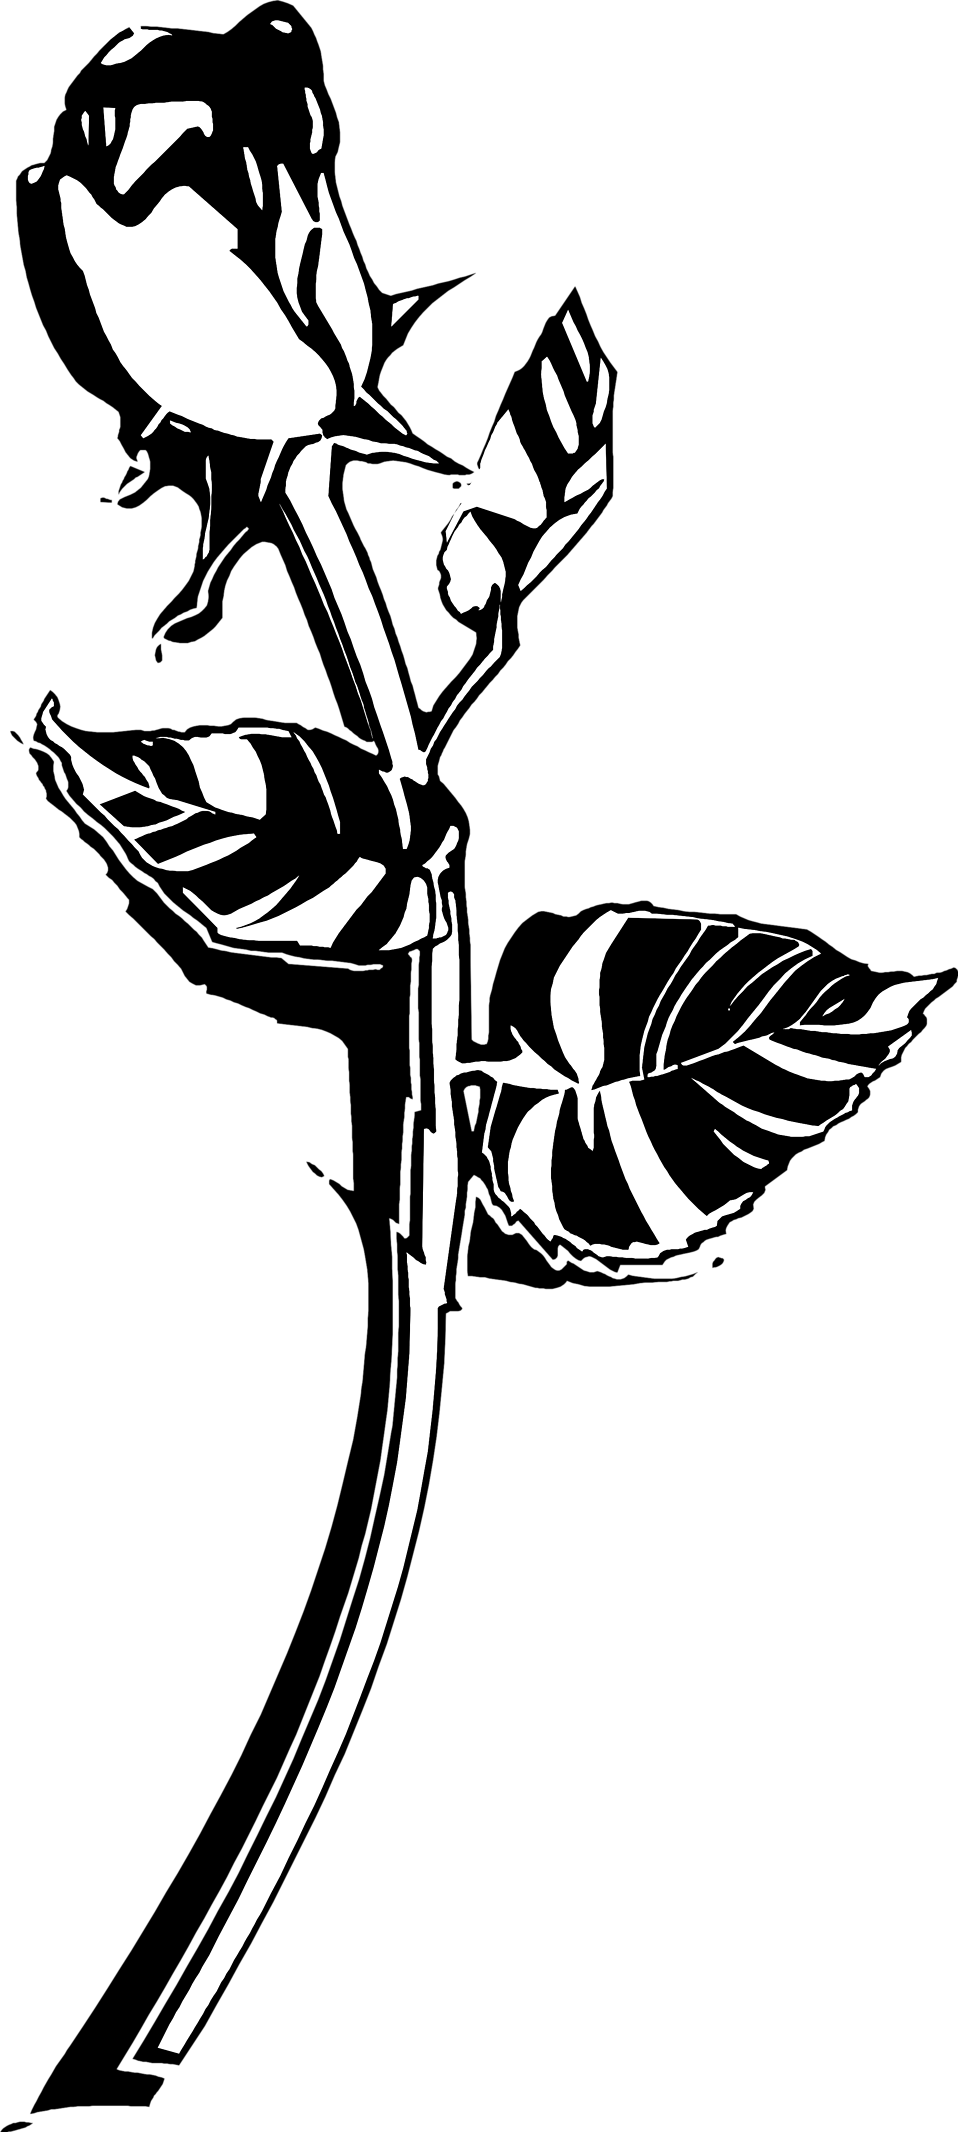 Rose flower clipart black and white vector royalty free library Rose | Free Stock Photo | Illustration of a long stem rose | # 9623 vector royalty free library